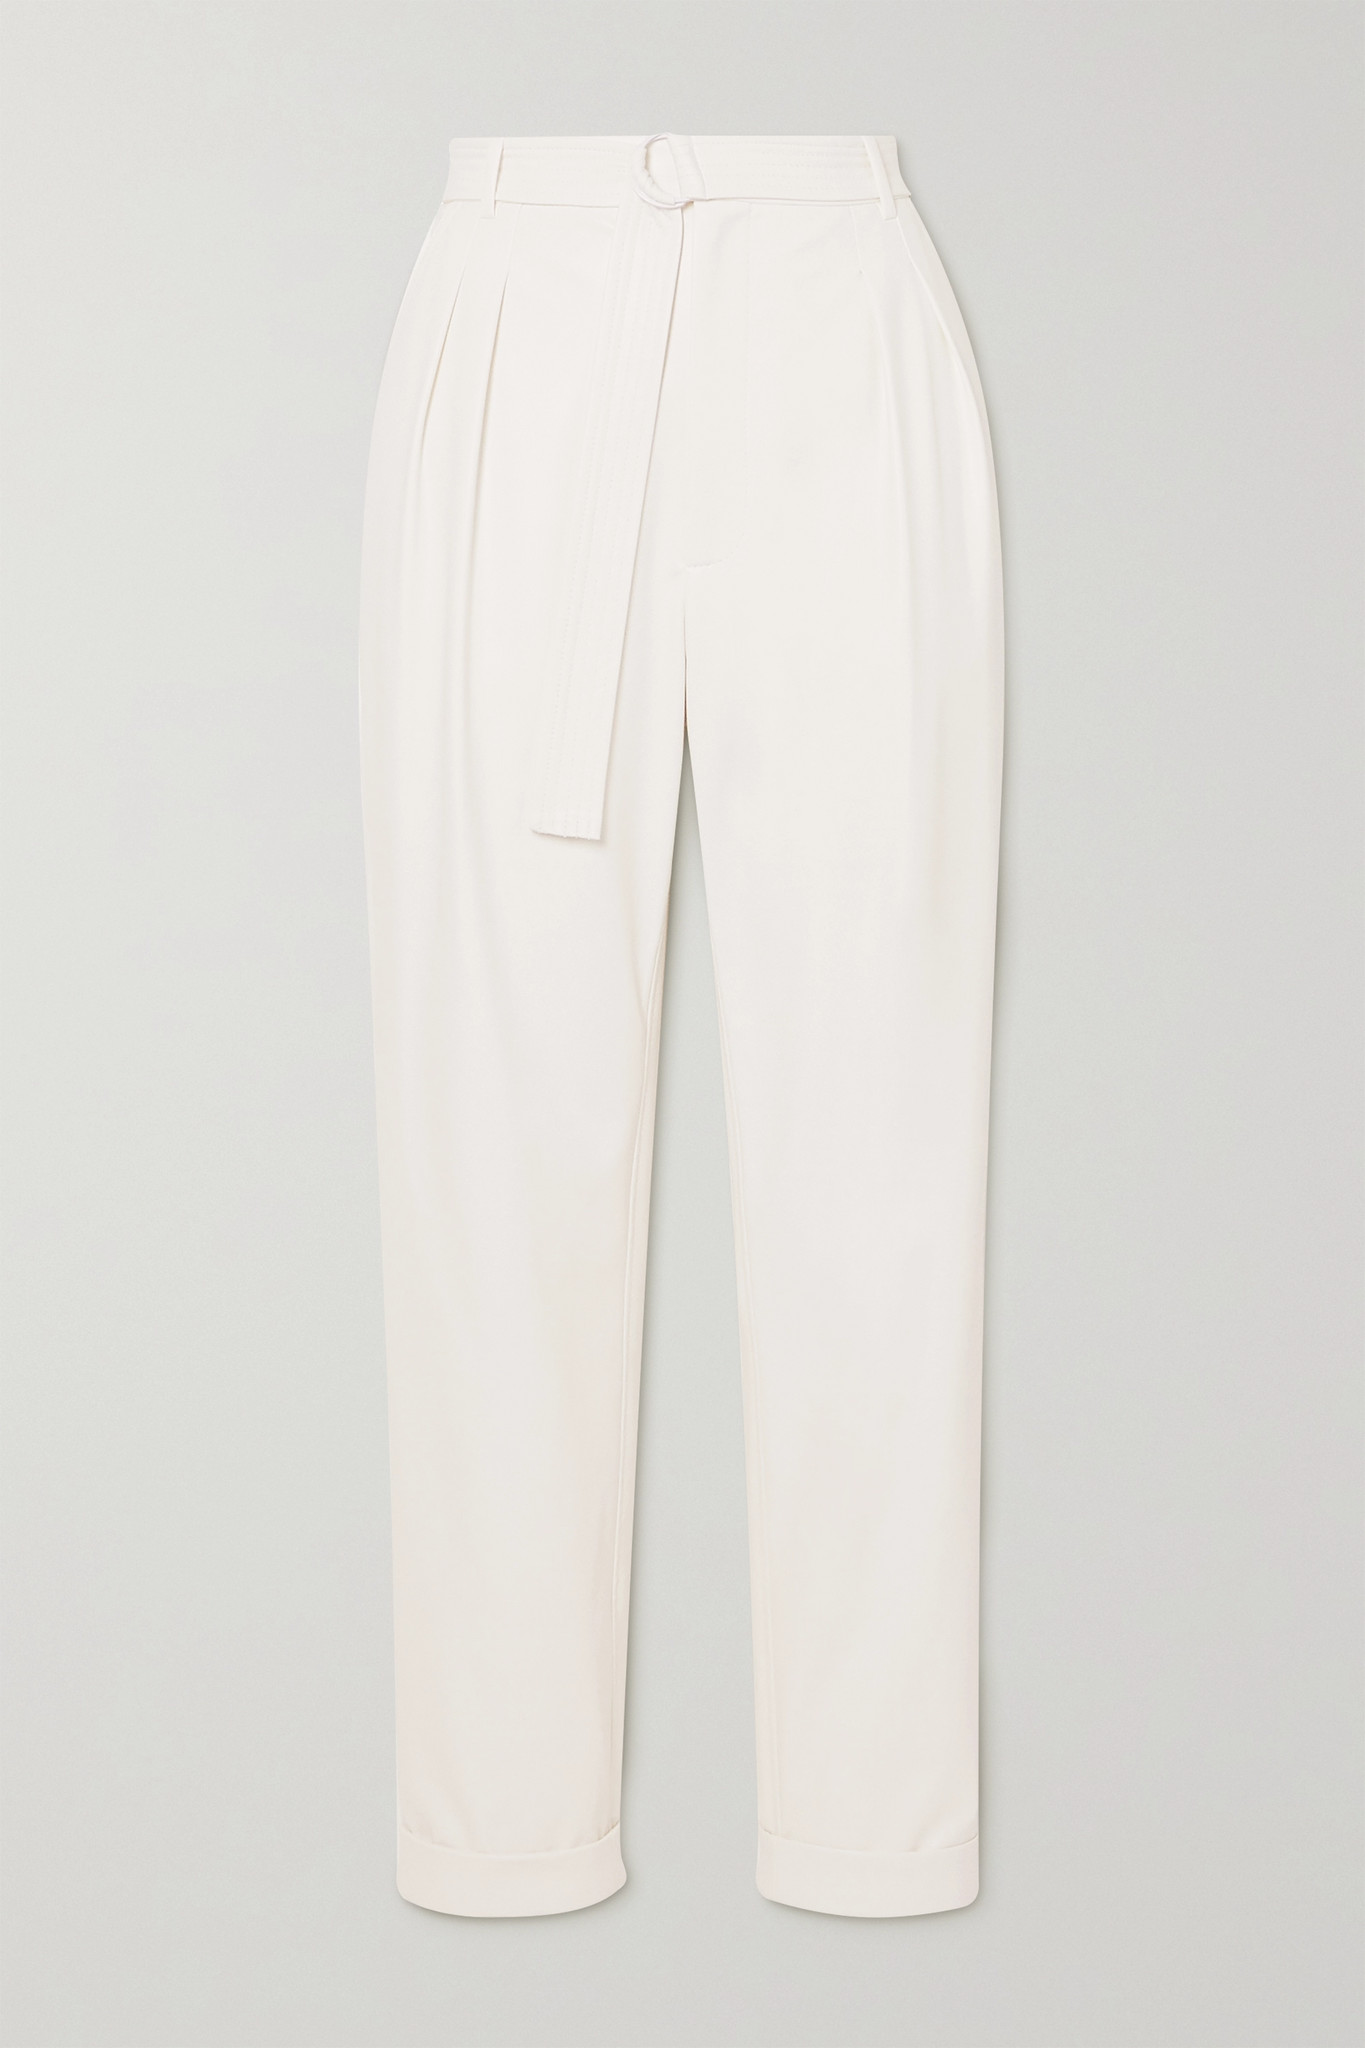 LAPOINTE - Belted Pleated Faux Stretch-leather Tapered Pants - White - US4